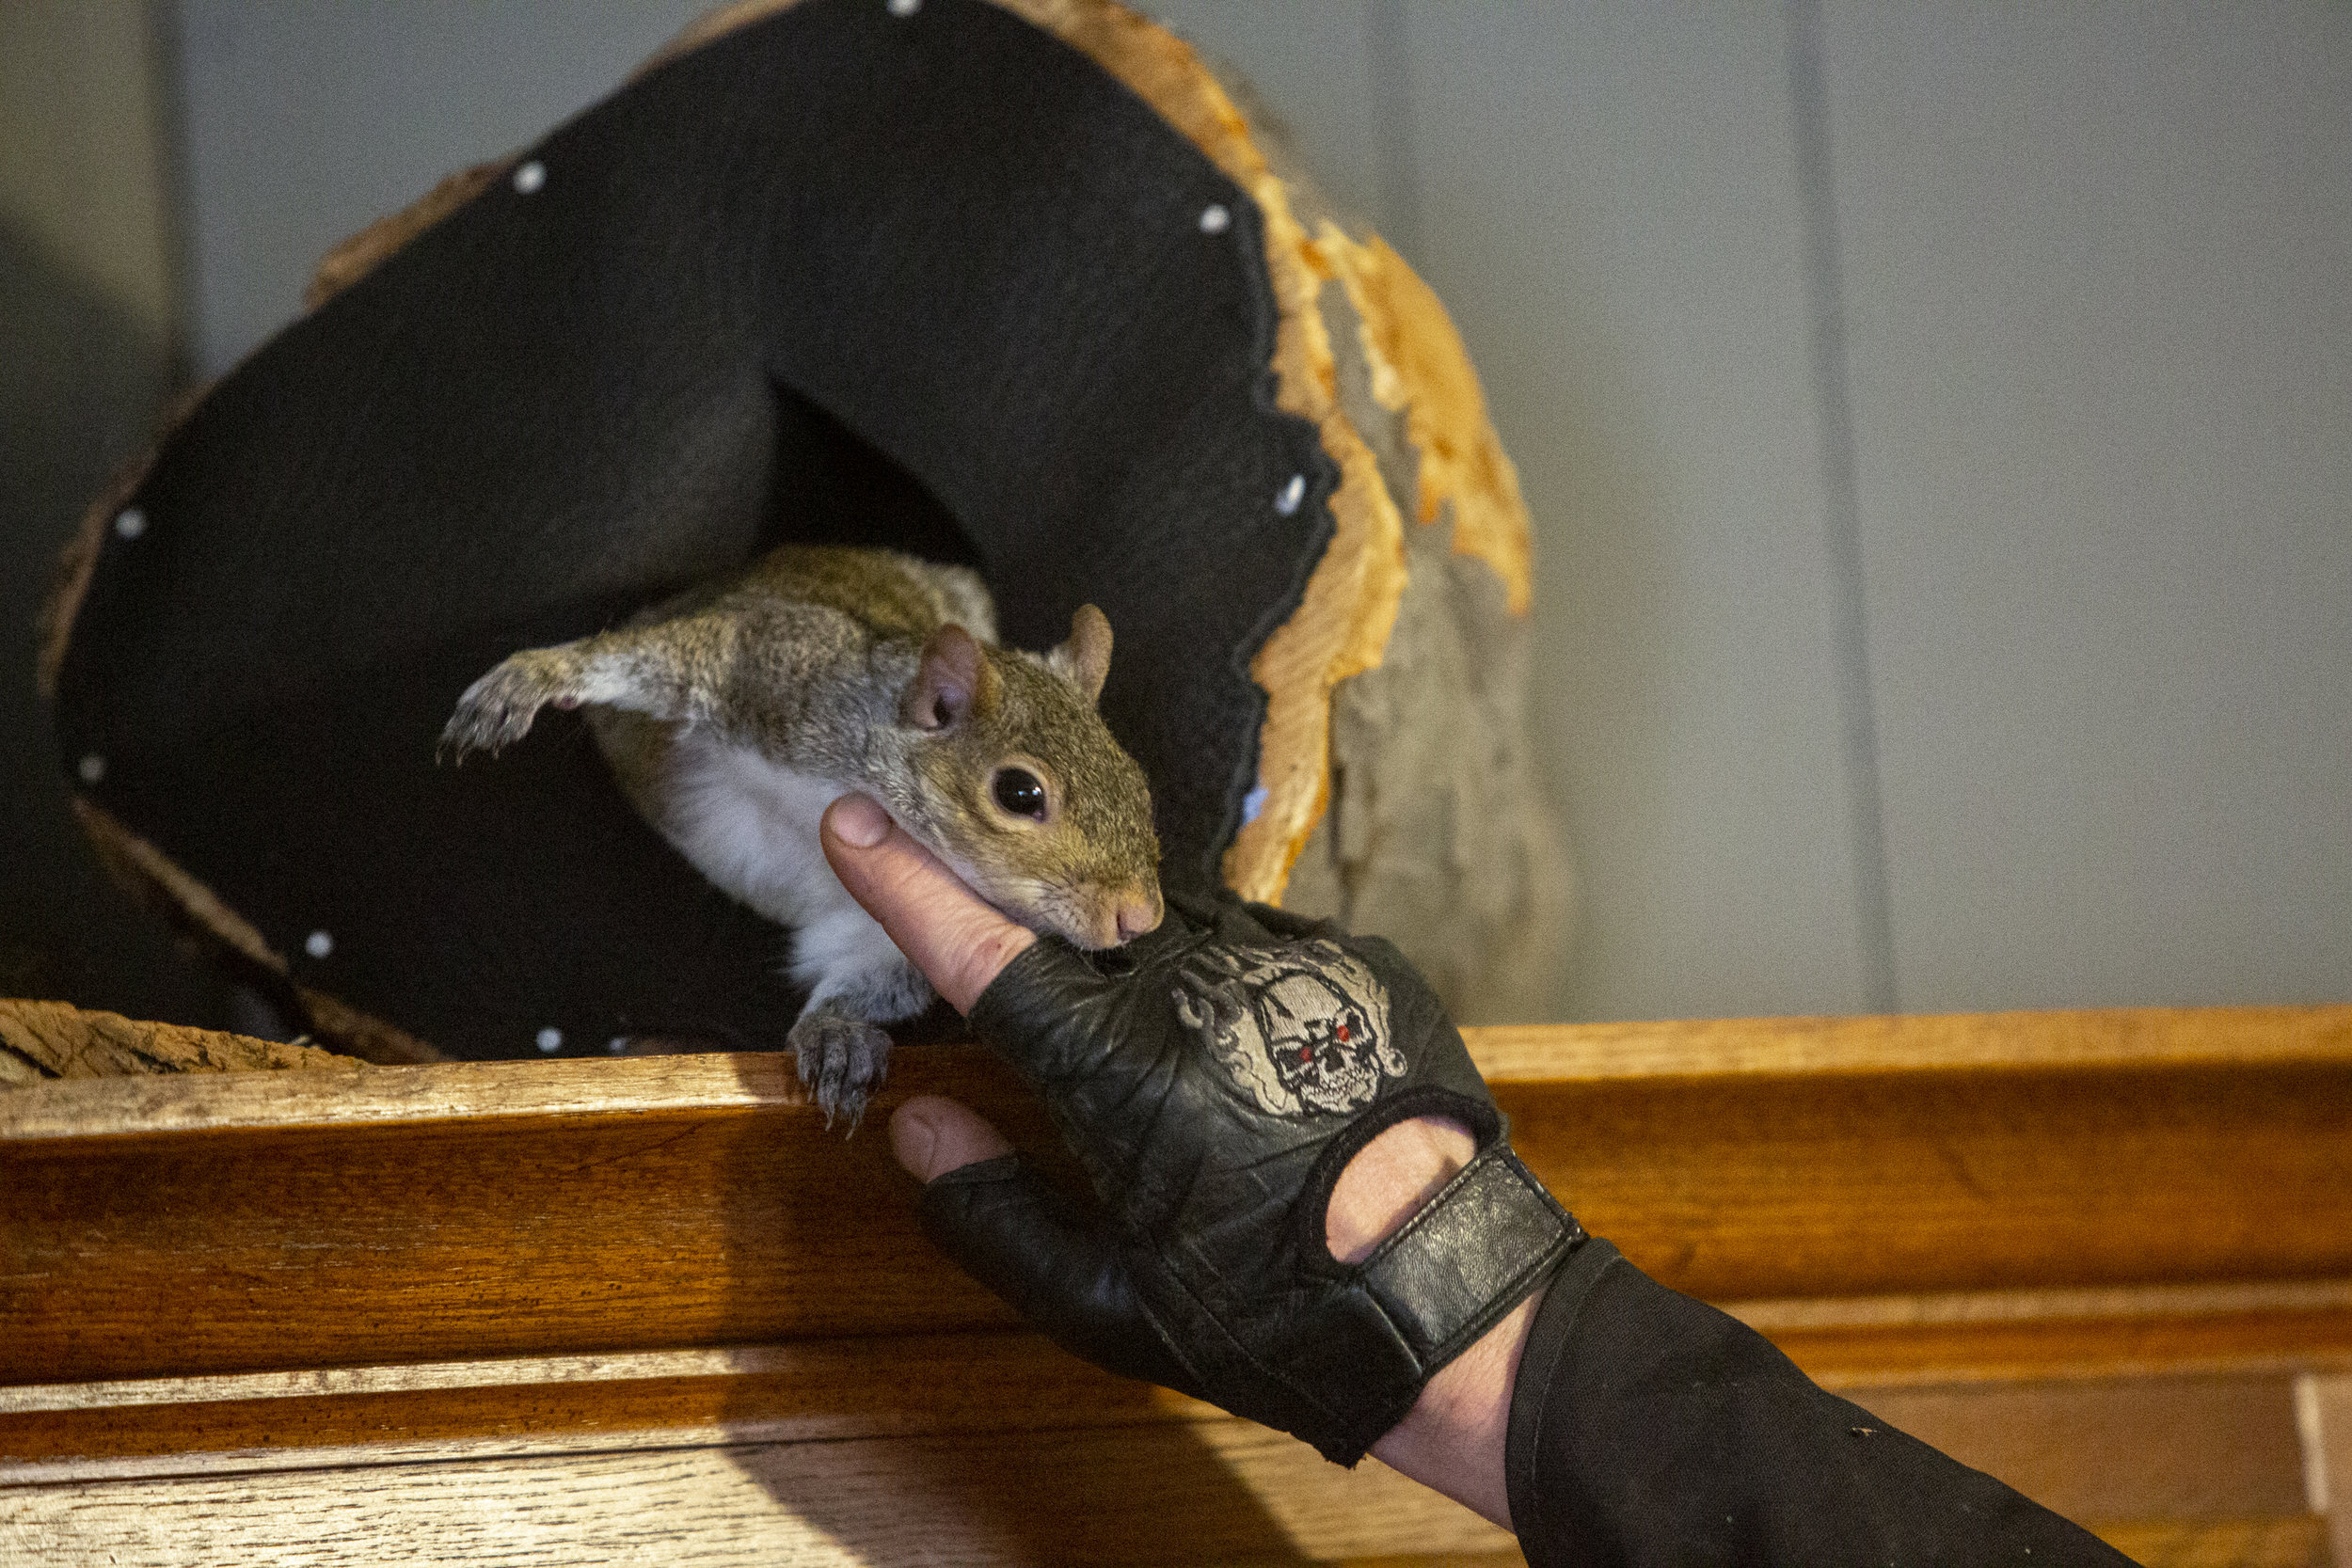 Tiny the squirrel emerges from his indoor, manmade nest to receive affection from his owner. Residents of Sharpsburg site the freedom to do as they please, without the judgement of neighbors, as one of the perks of living in this rural area.